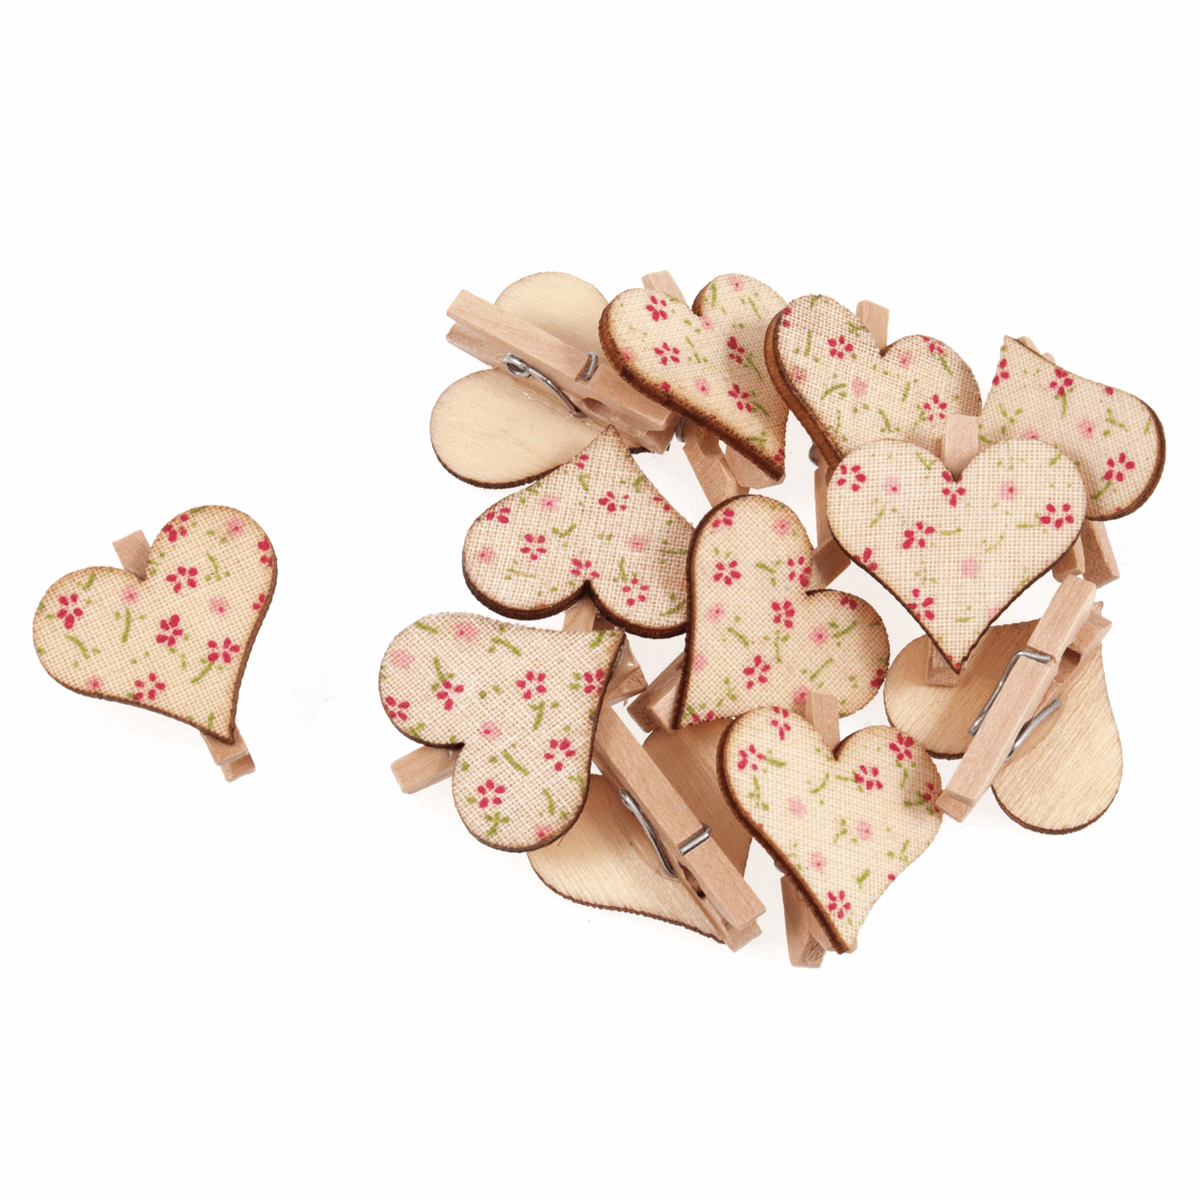 Picture of Pegs: Floral Heart: Pack of 12